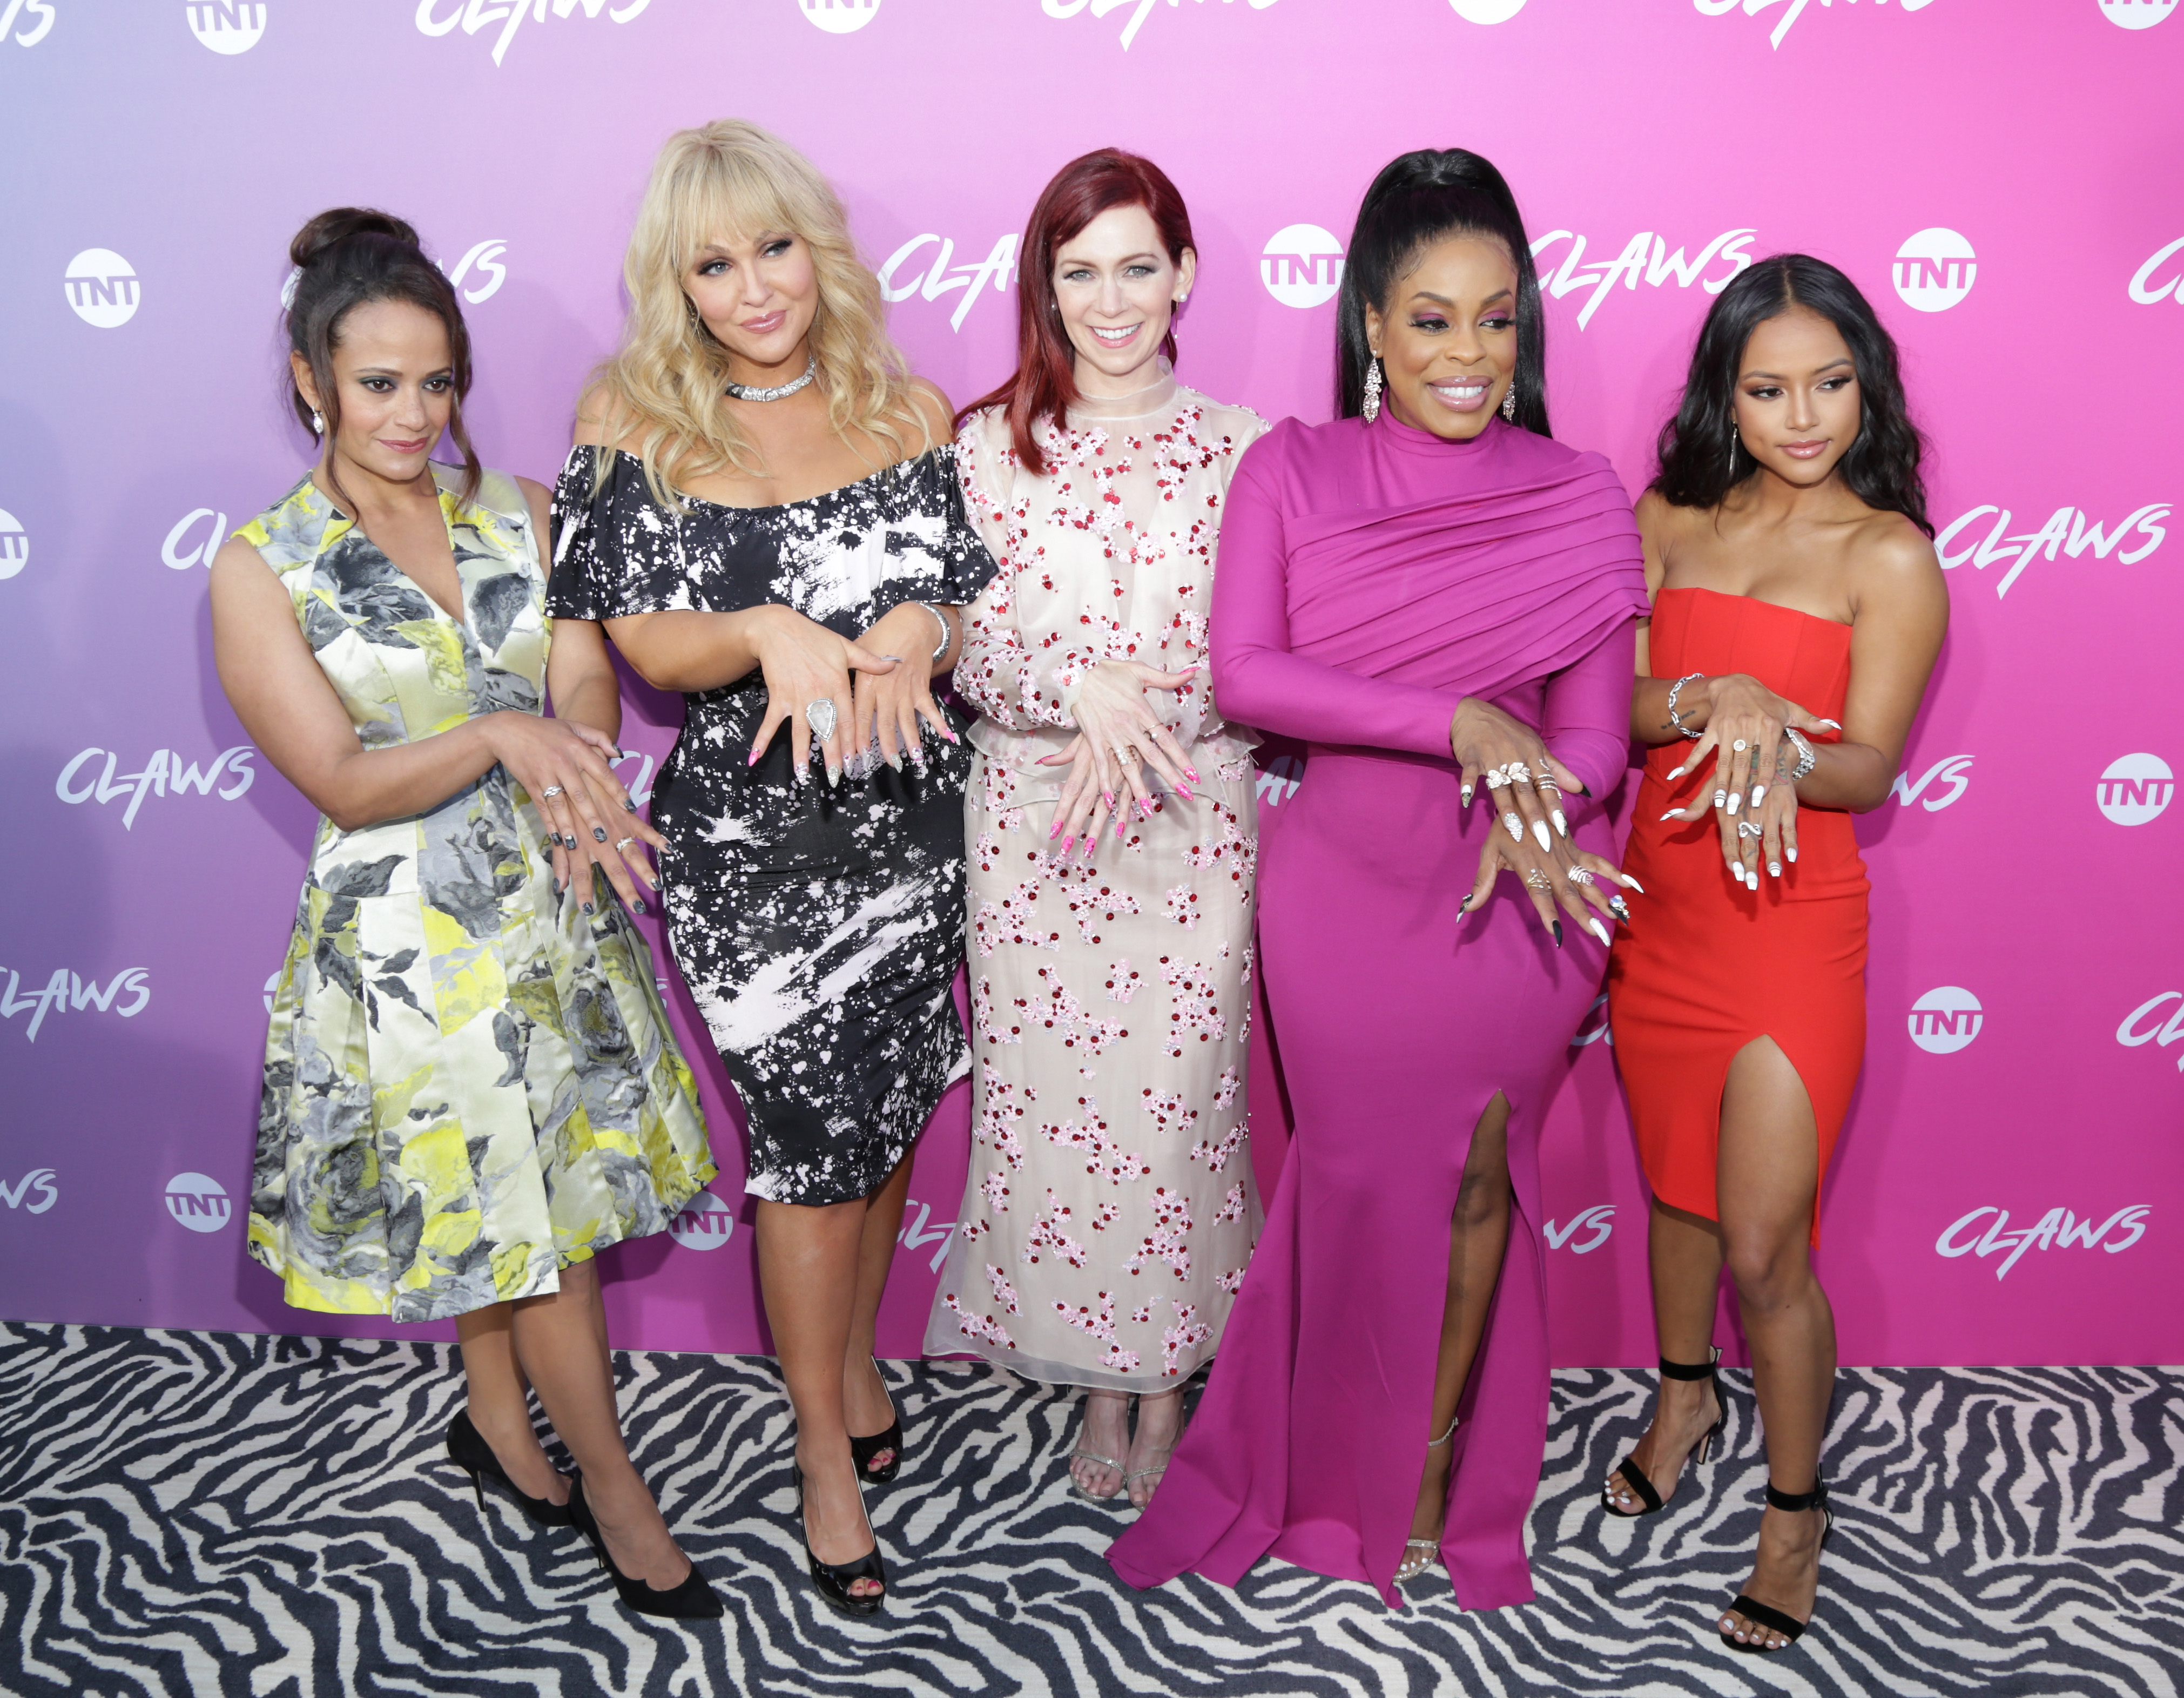 Premiere Of TNT's 'Claws' - Arrivals